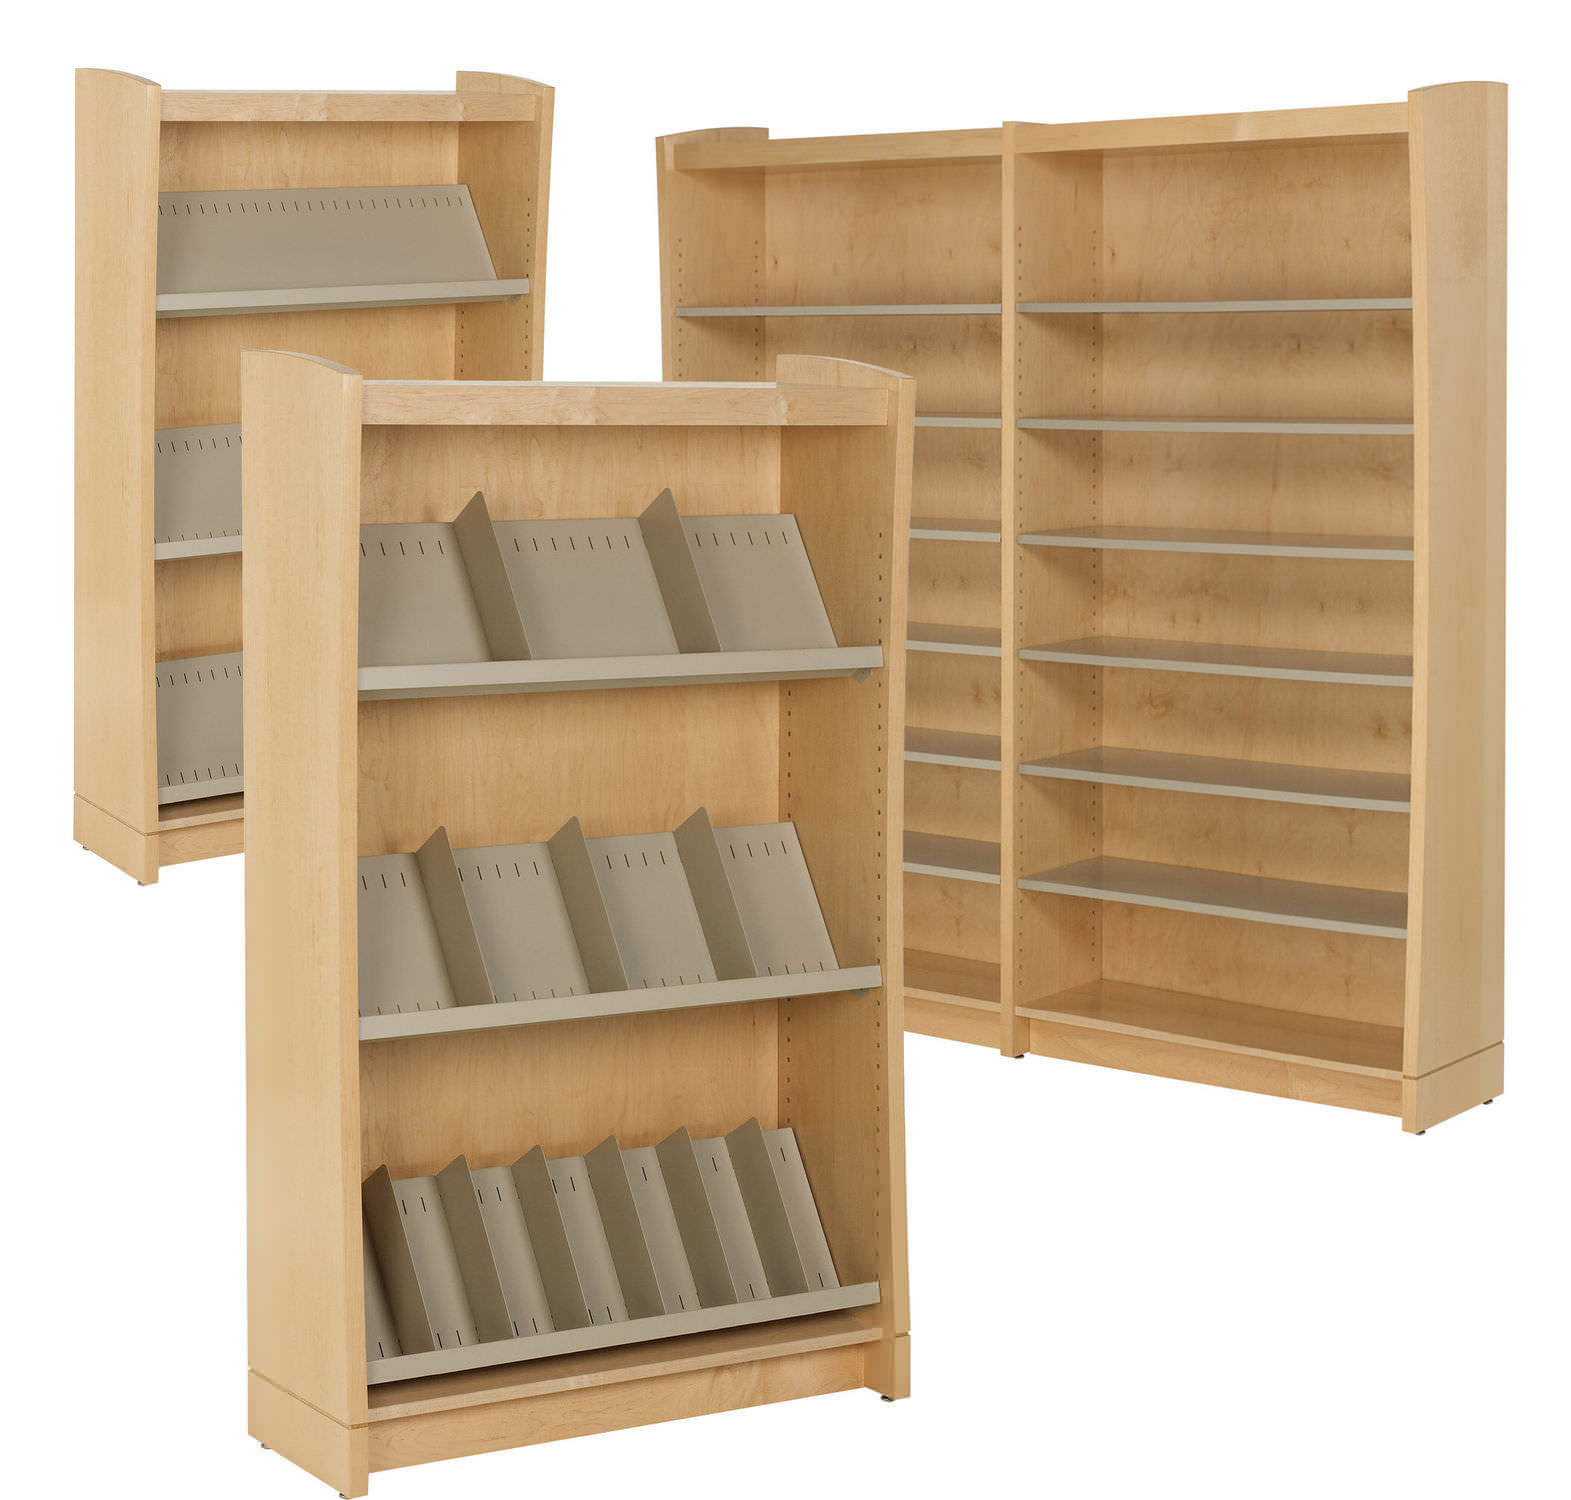 Rayonnage Pour Archives Modulaire Pour Stockage Pour  # Bibliotheque Modulaire